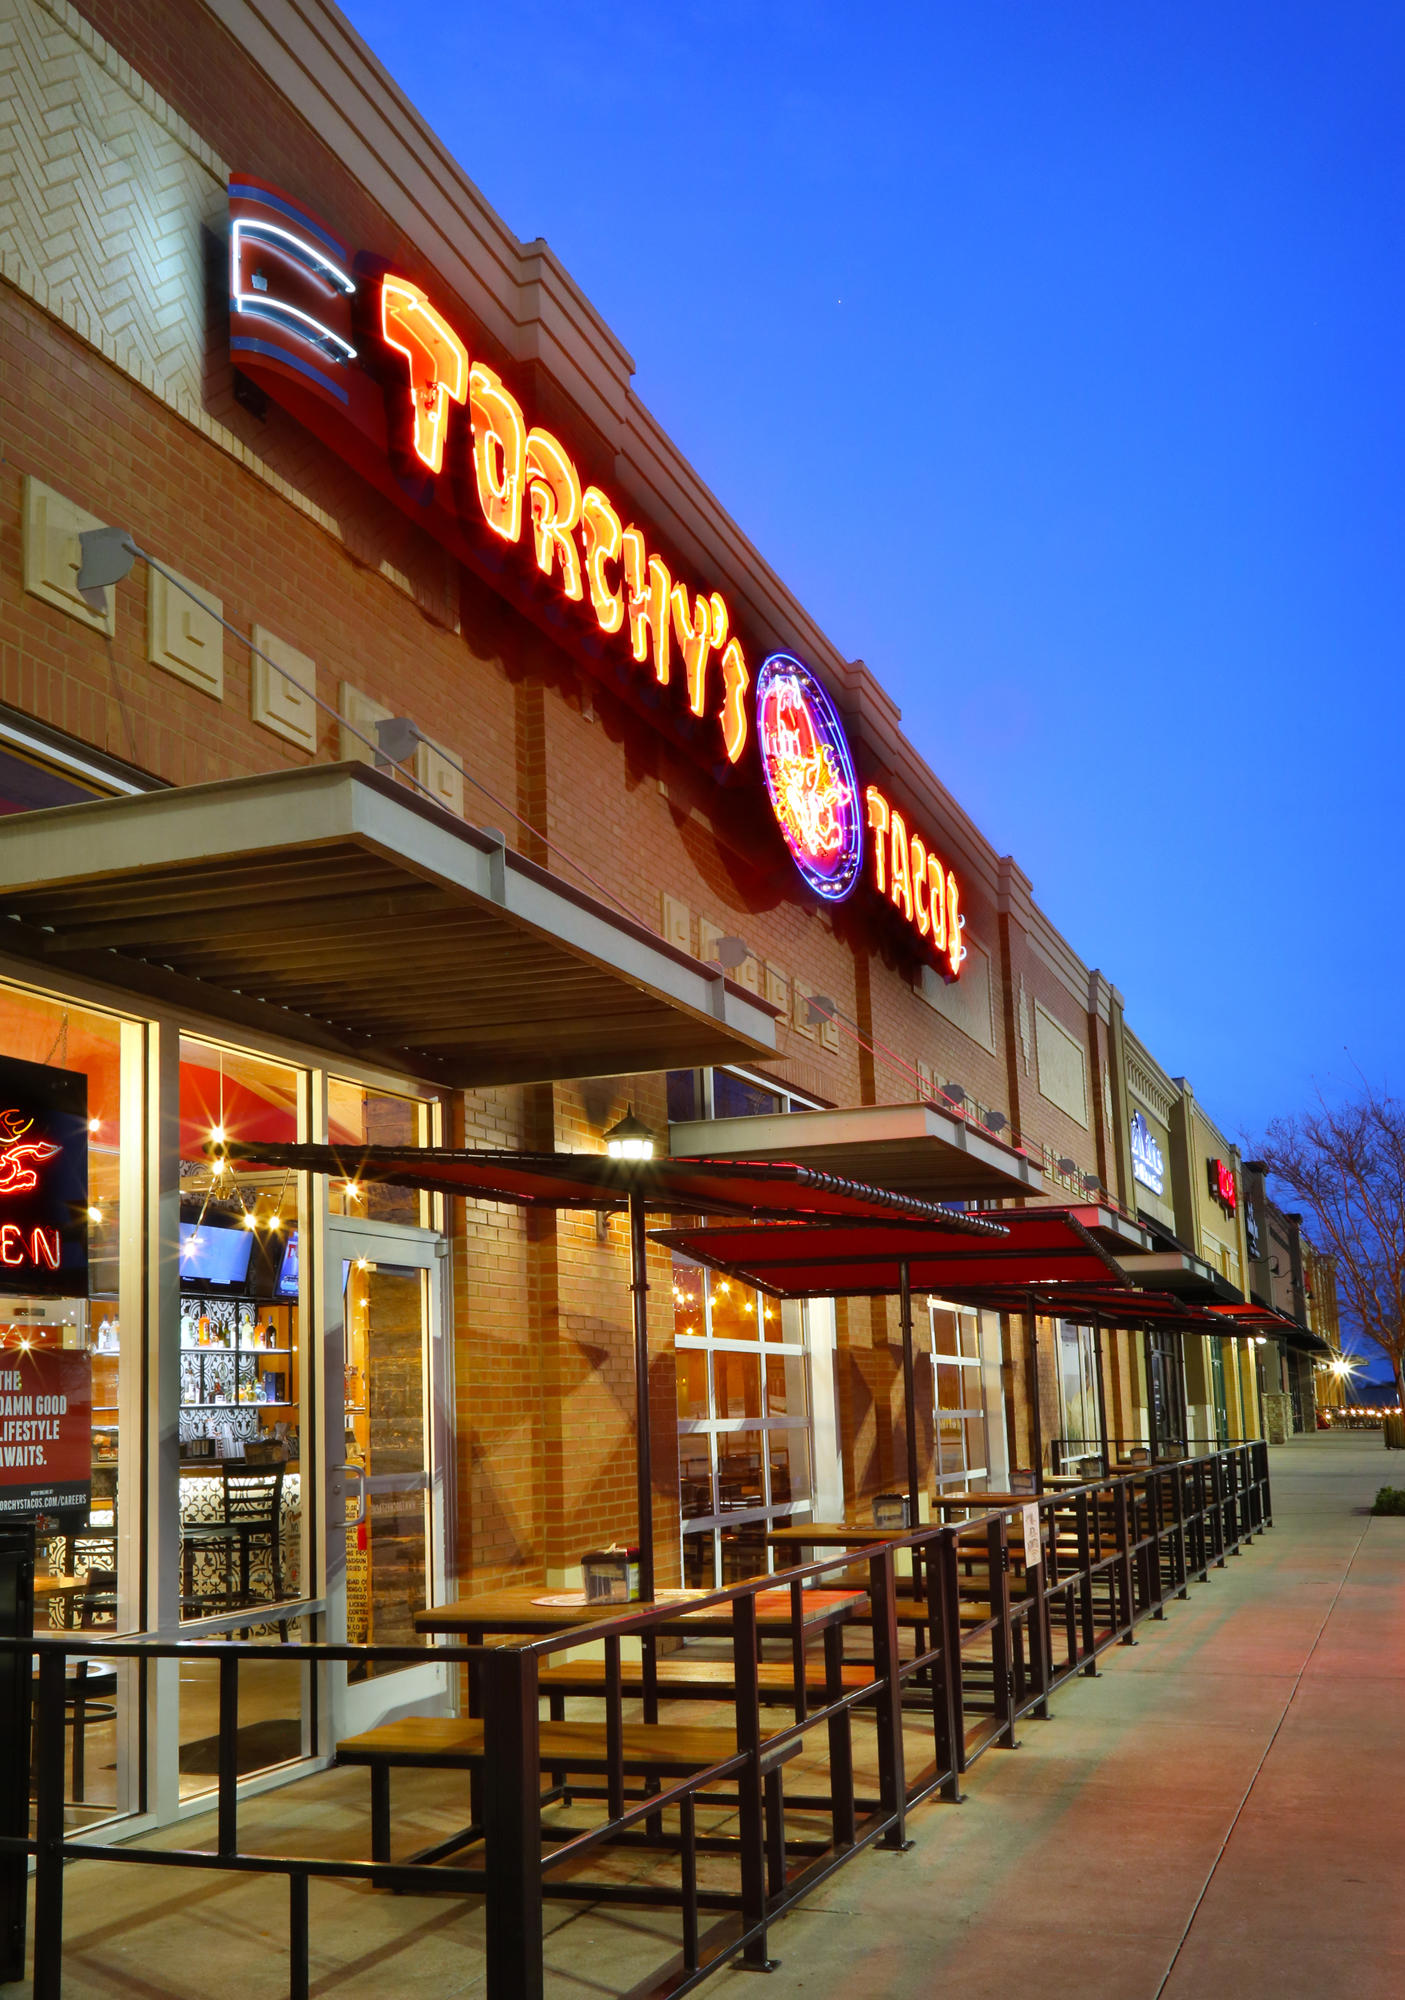 Torchy's Tacos image 8